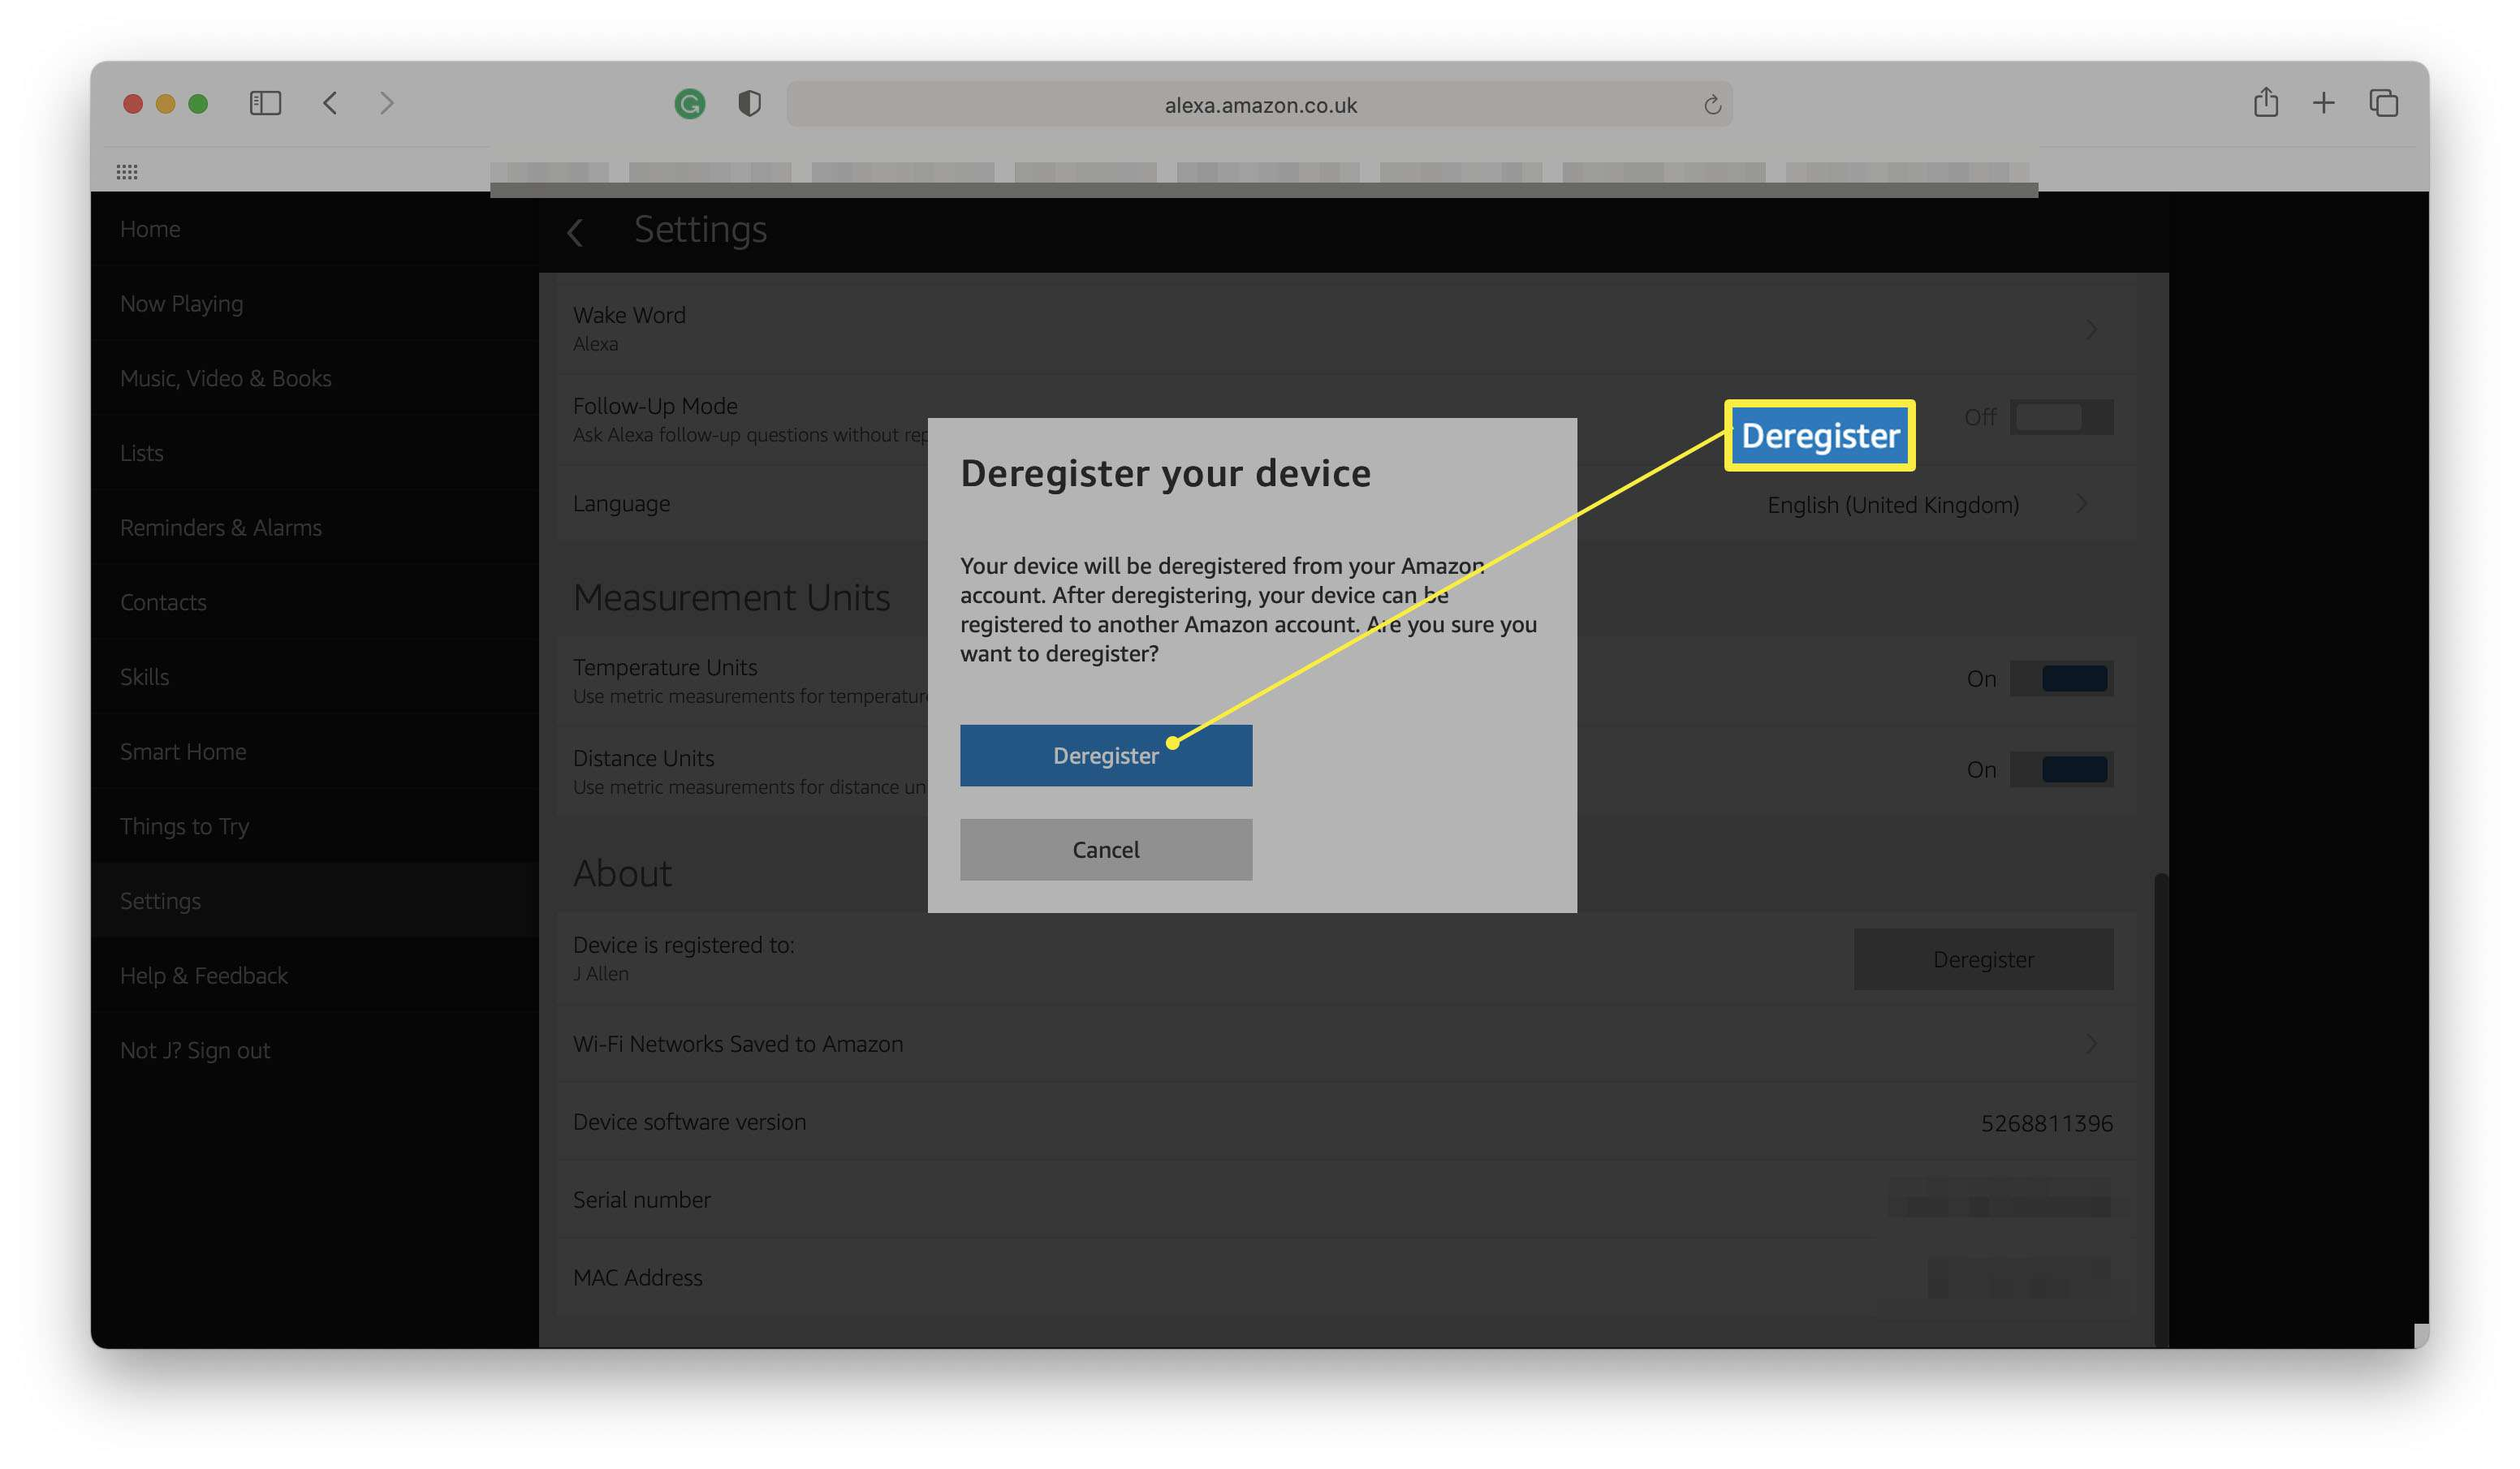 Alexa website with Deregister your device highlighted